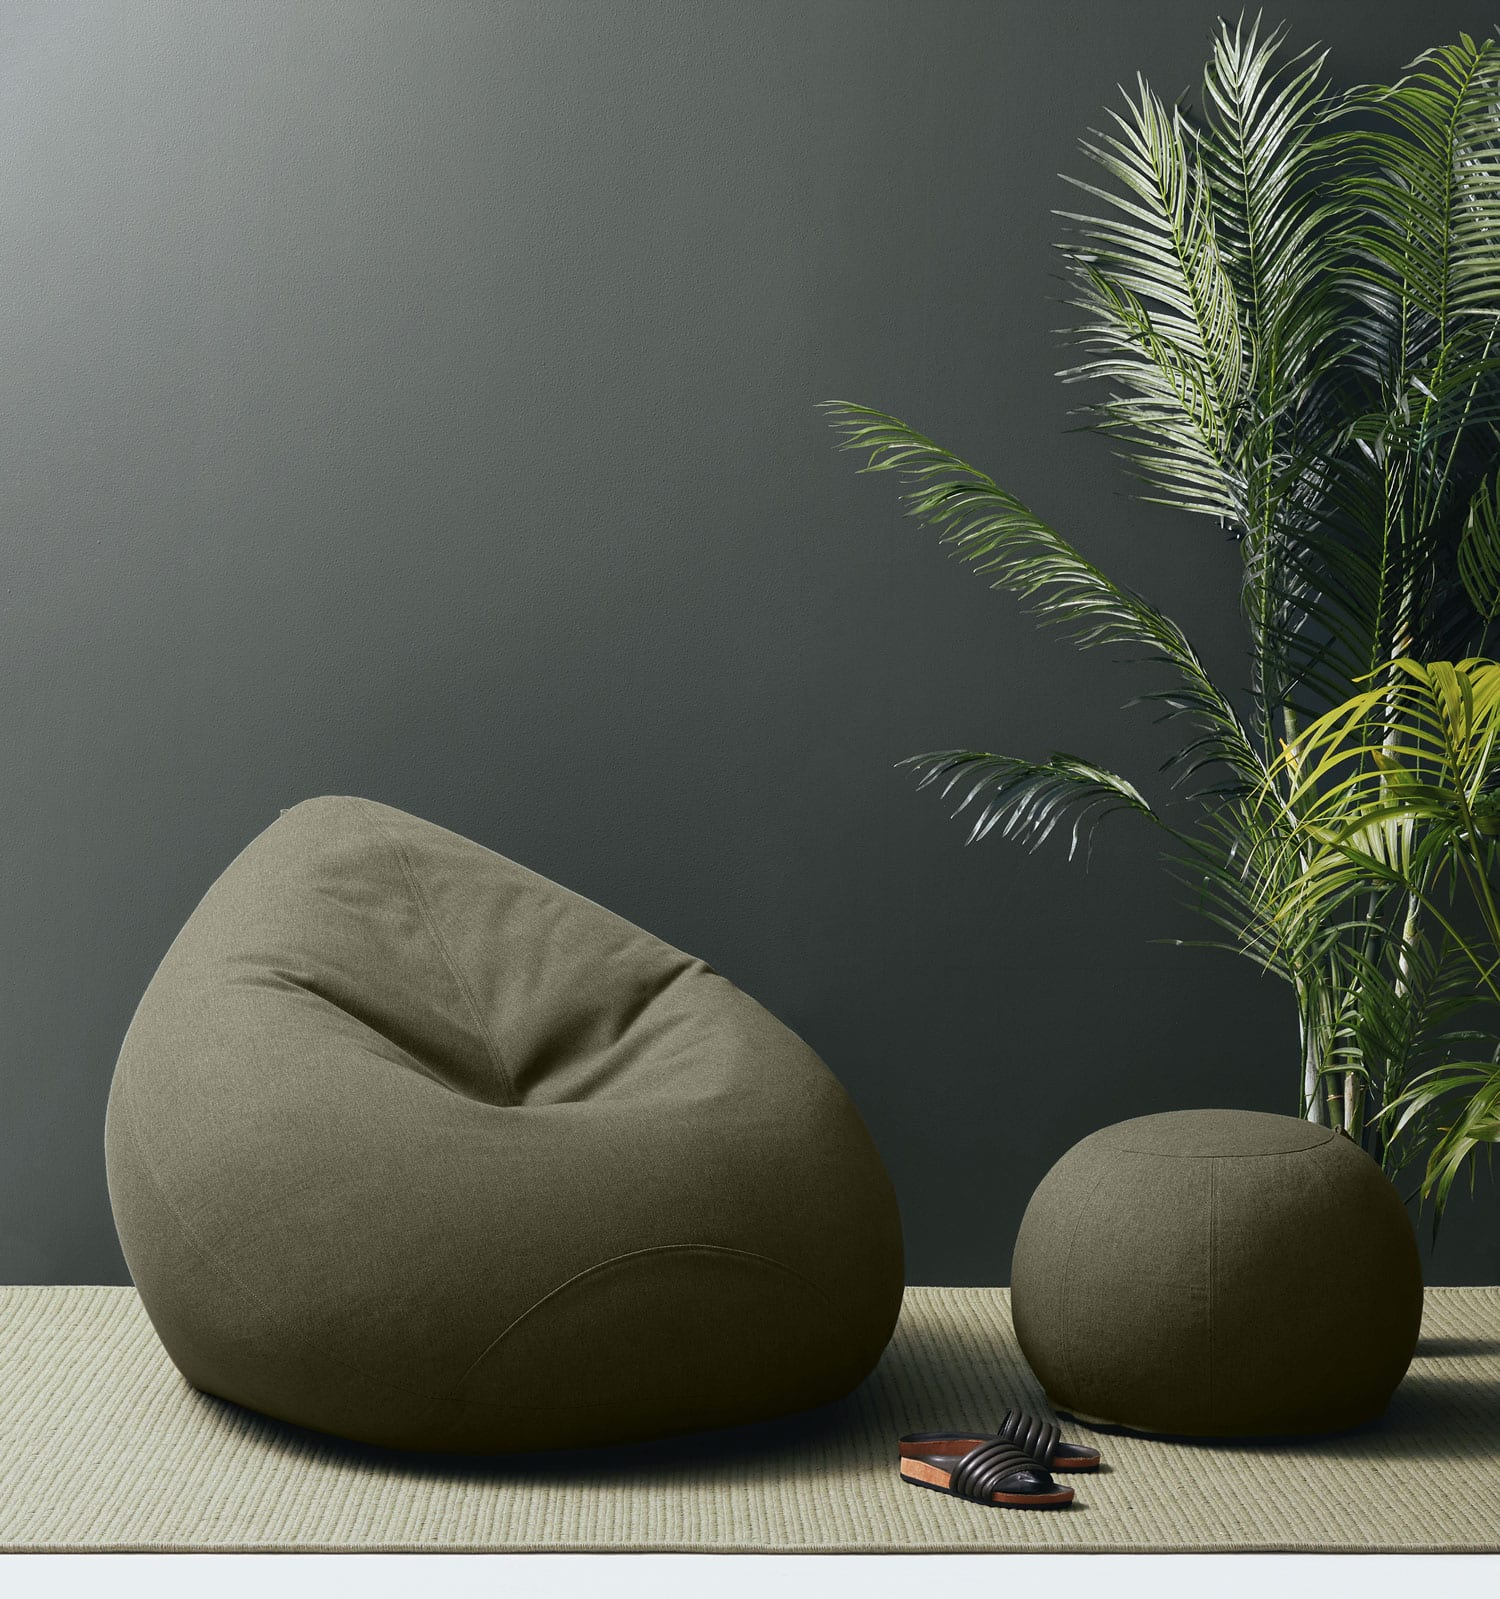 Peachy Lujo Launches Indoor X Out Bean Bag Collection Yellowtrace Machost Co Dining Chair Design Ideas Machostcouk